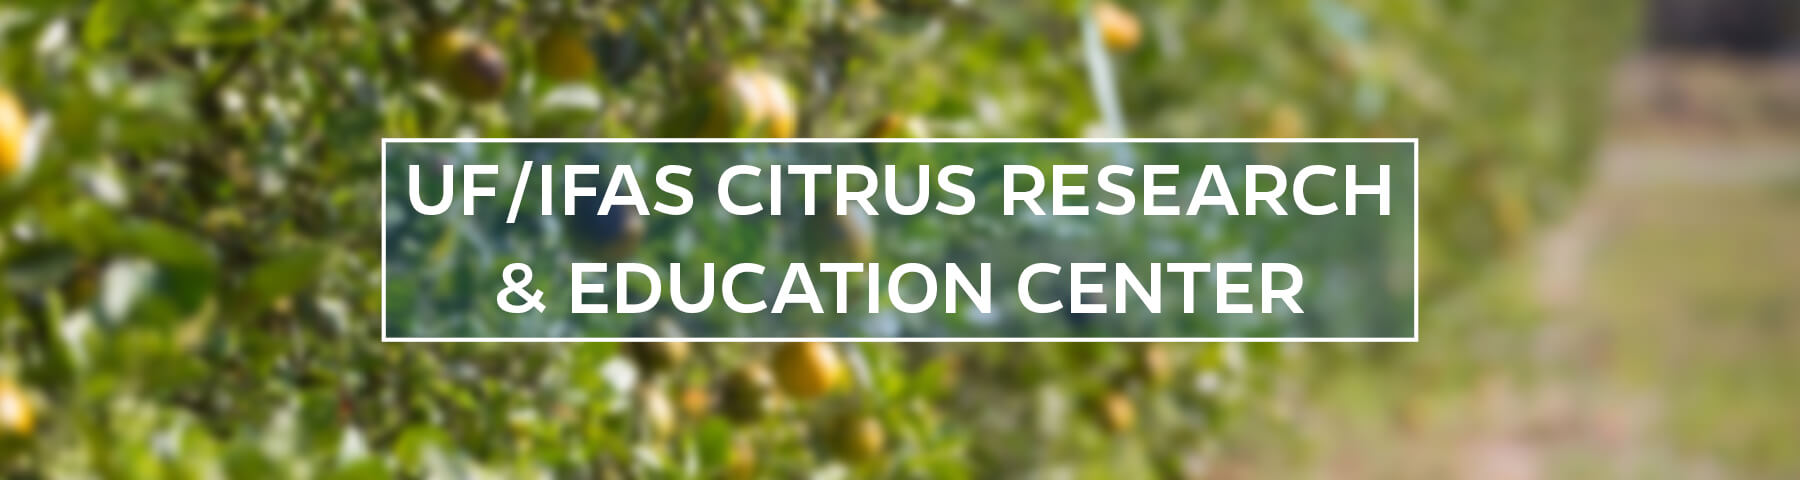 UF/IFAS Citrus Research and Education Center